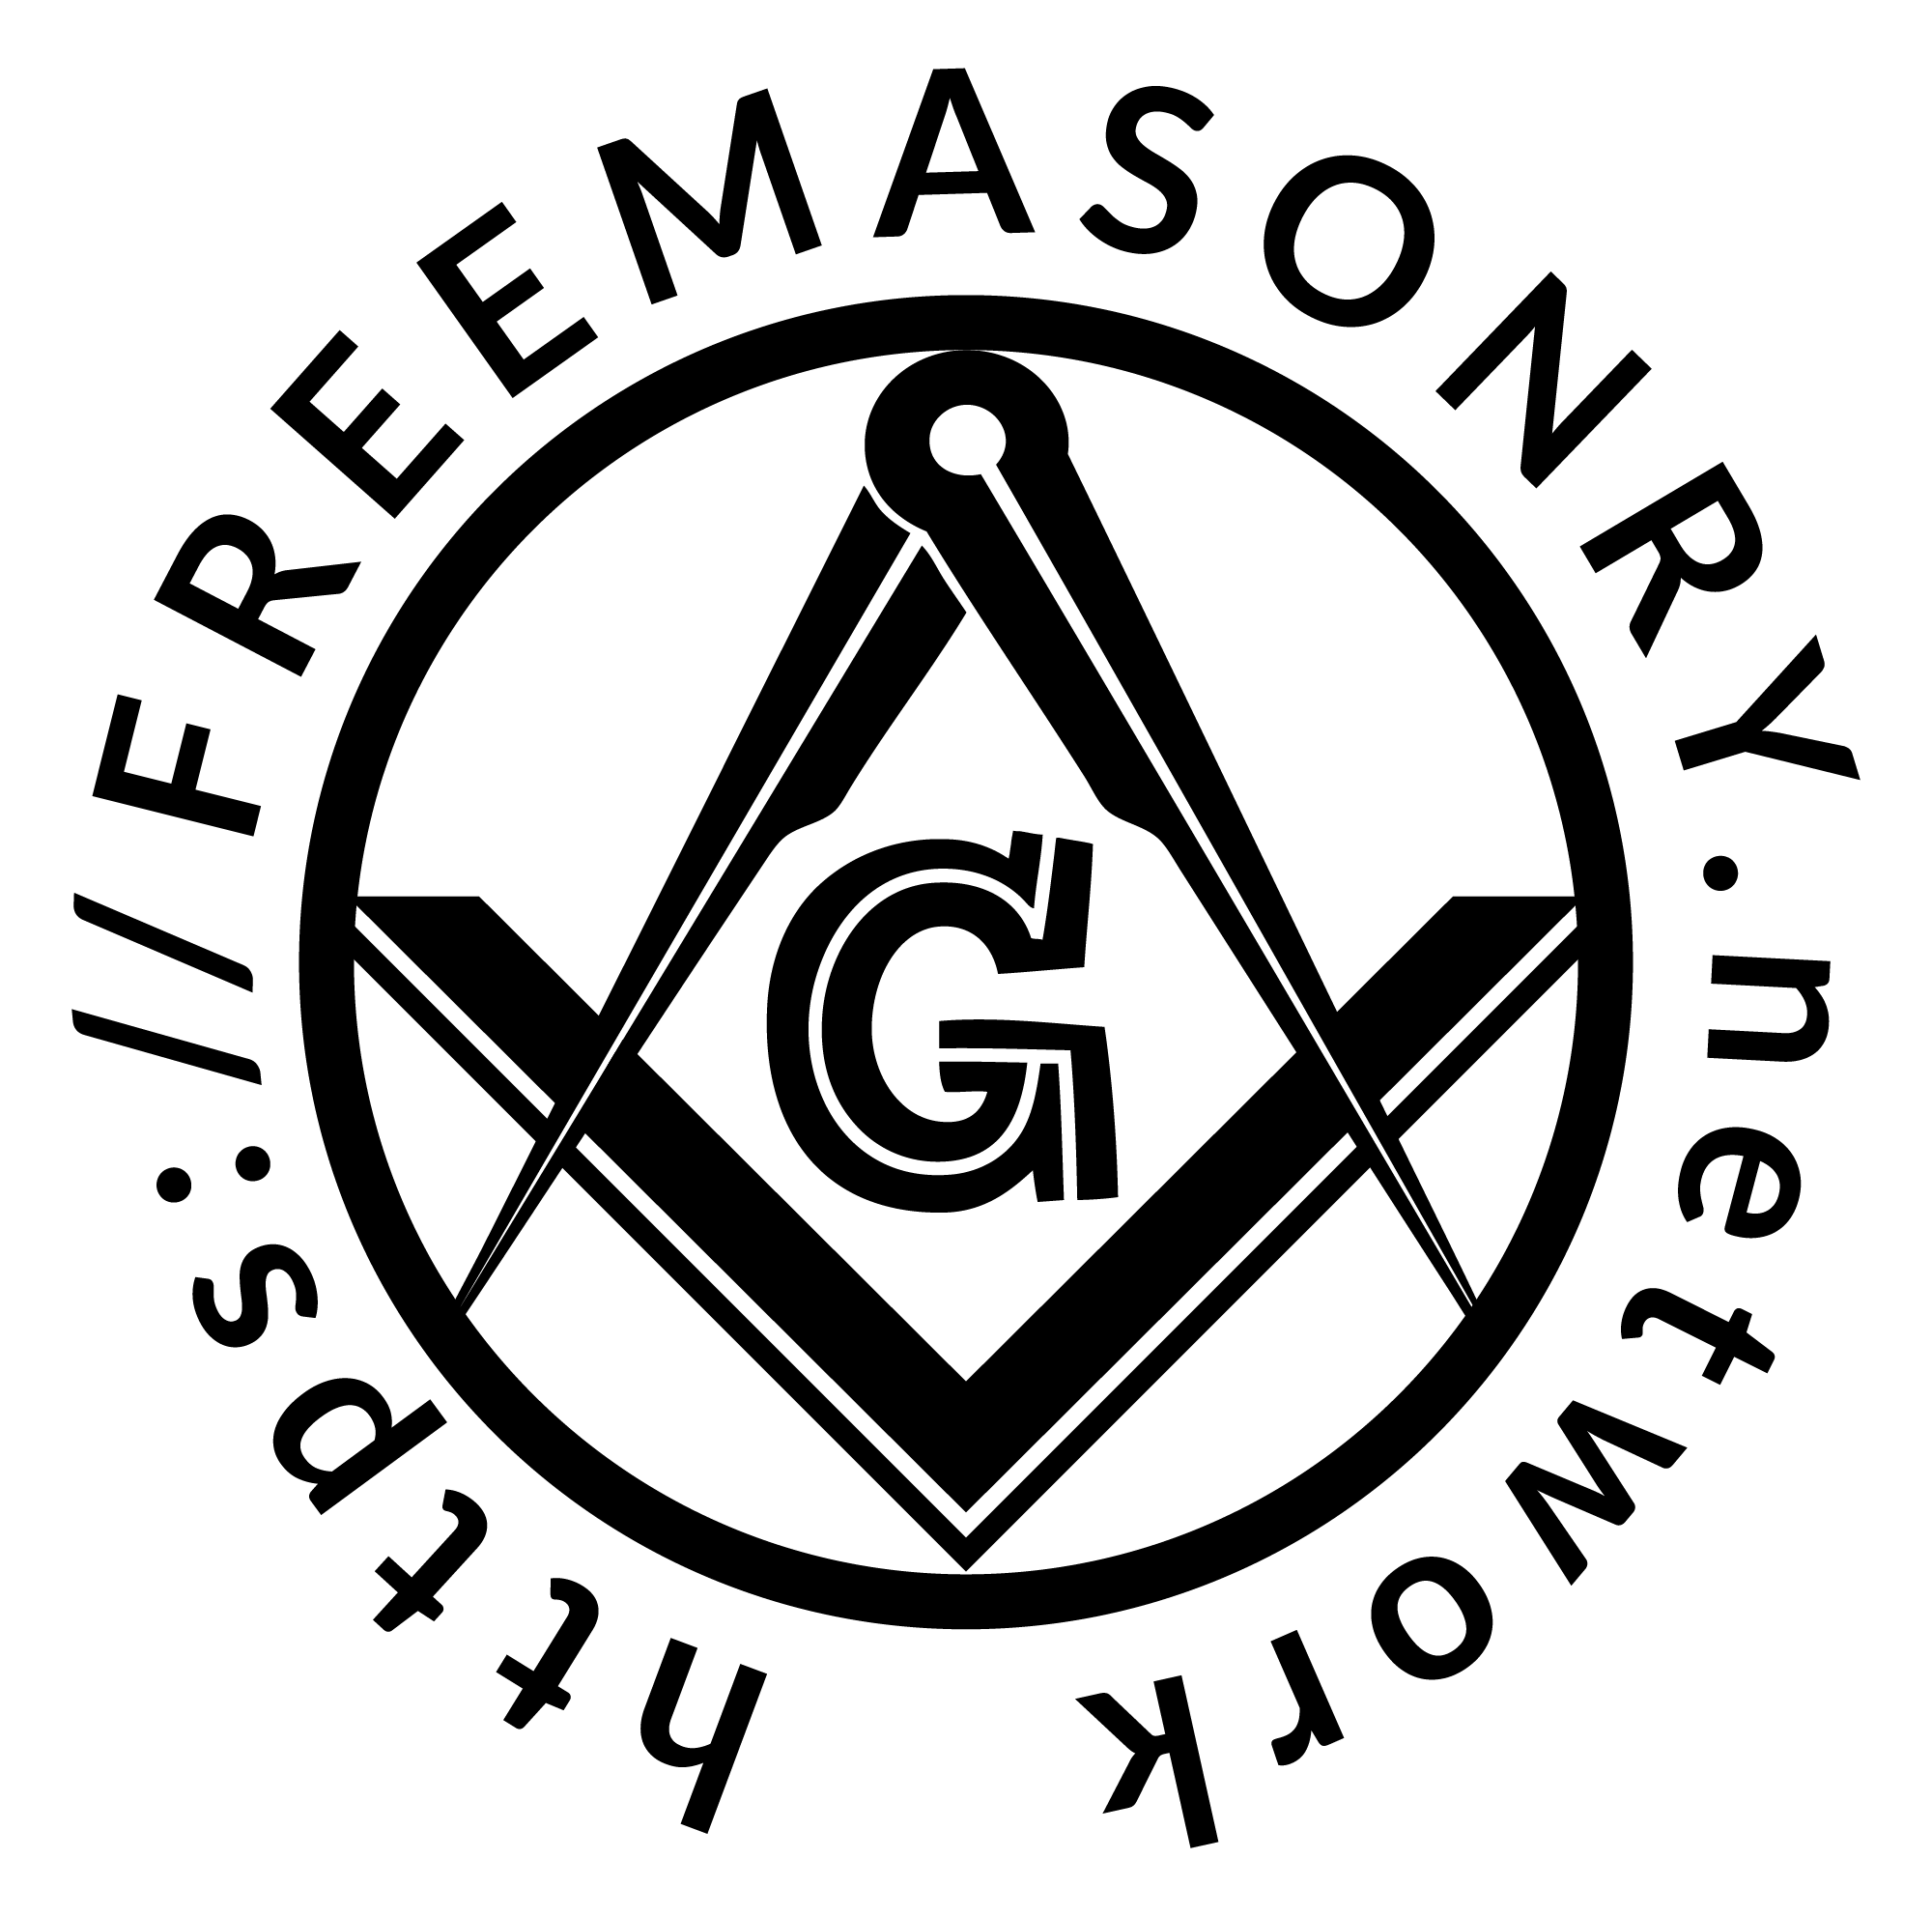 """OCCULT FREEMASONRY"""